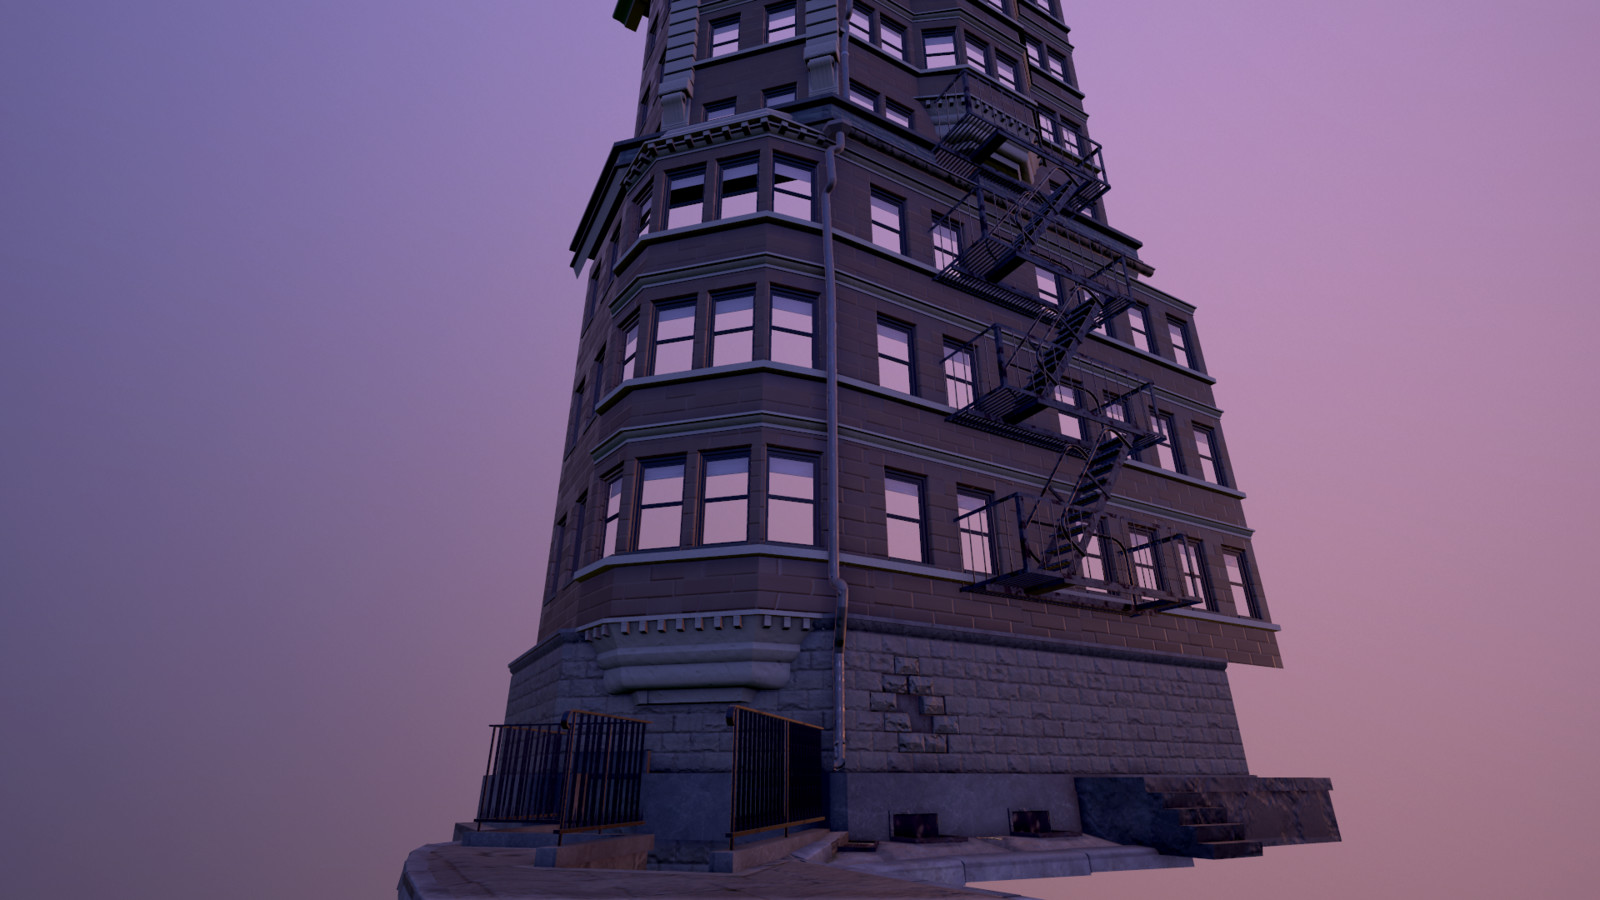 Street-view of the entrance of the building, rendered in Marmoset Toolbag